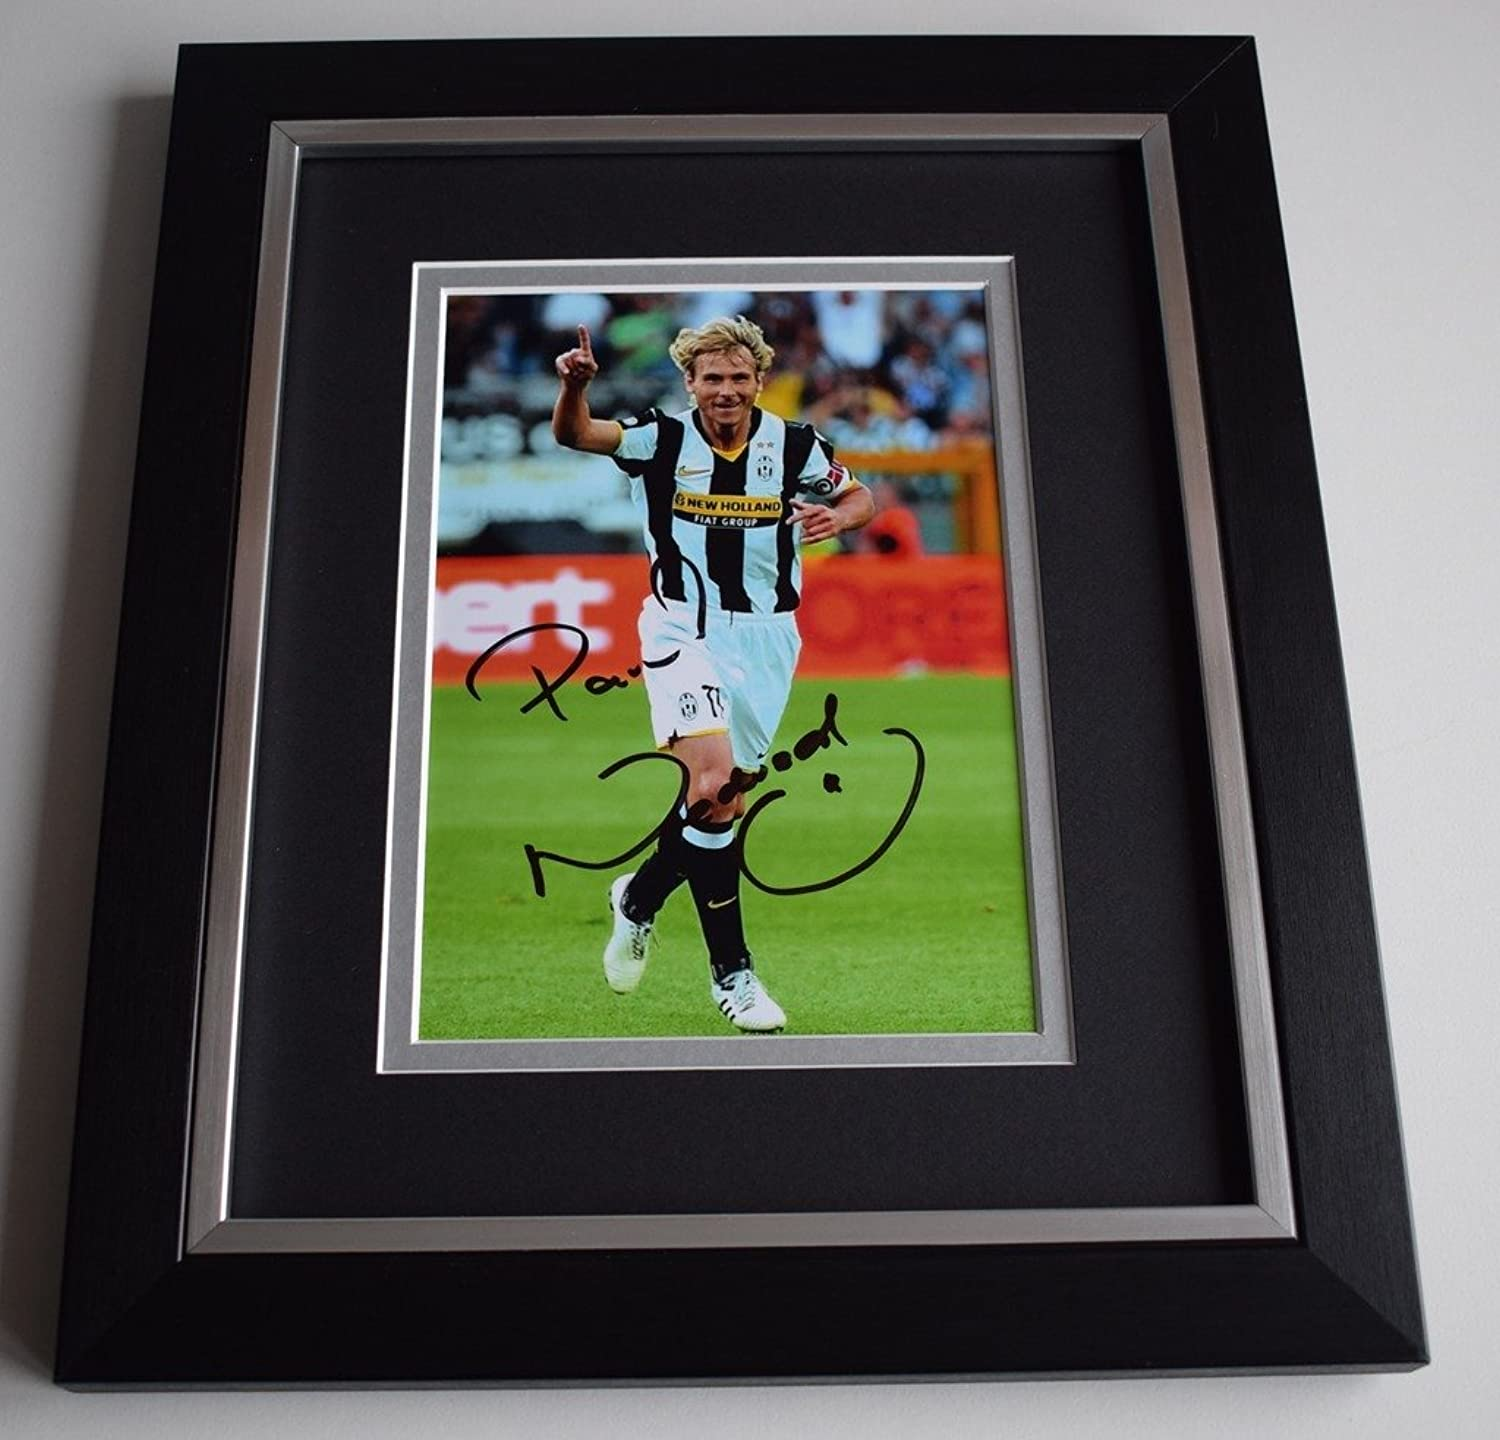 Sportagraphs Pavel Nedved SIGNED 10X8 FRAMED Photo Autograph Display Juventus AFTAL & COA PERFECT GIFT